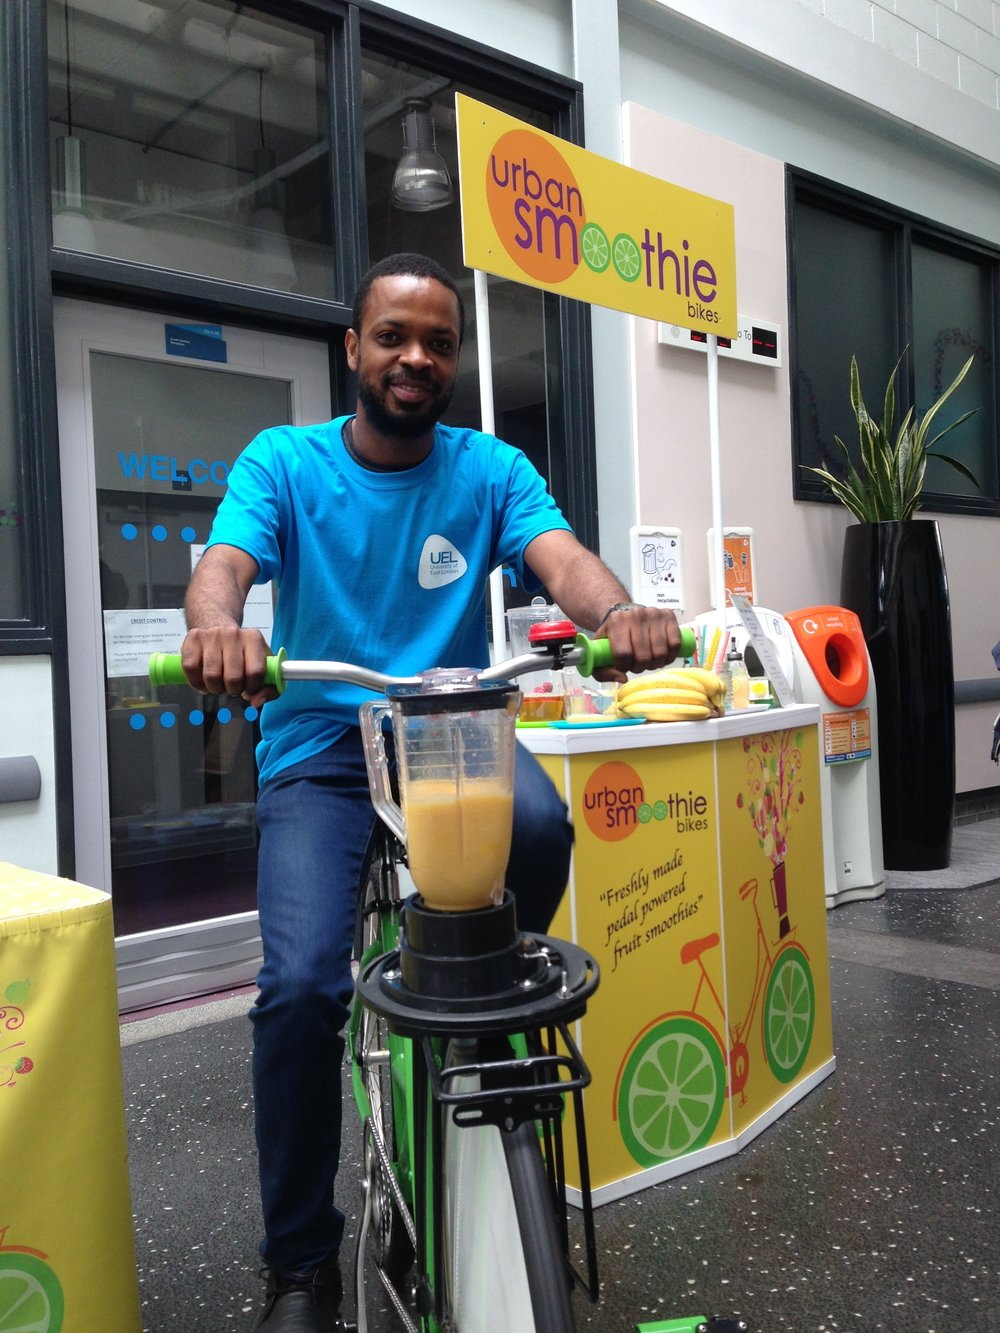 Urban Smoothie Bikes at University East London